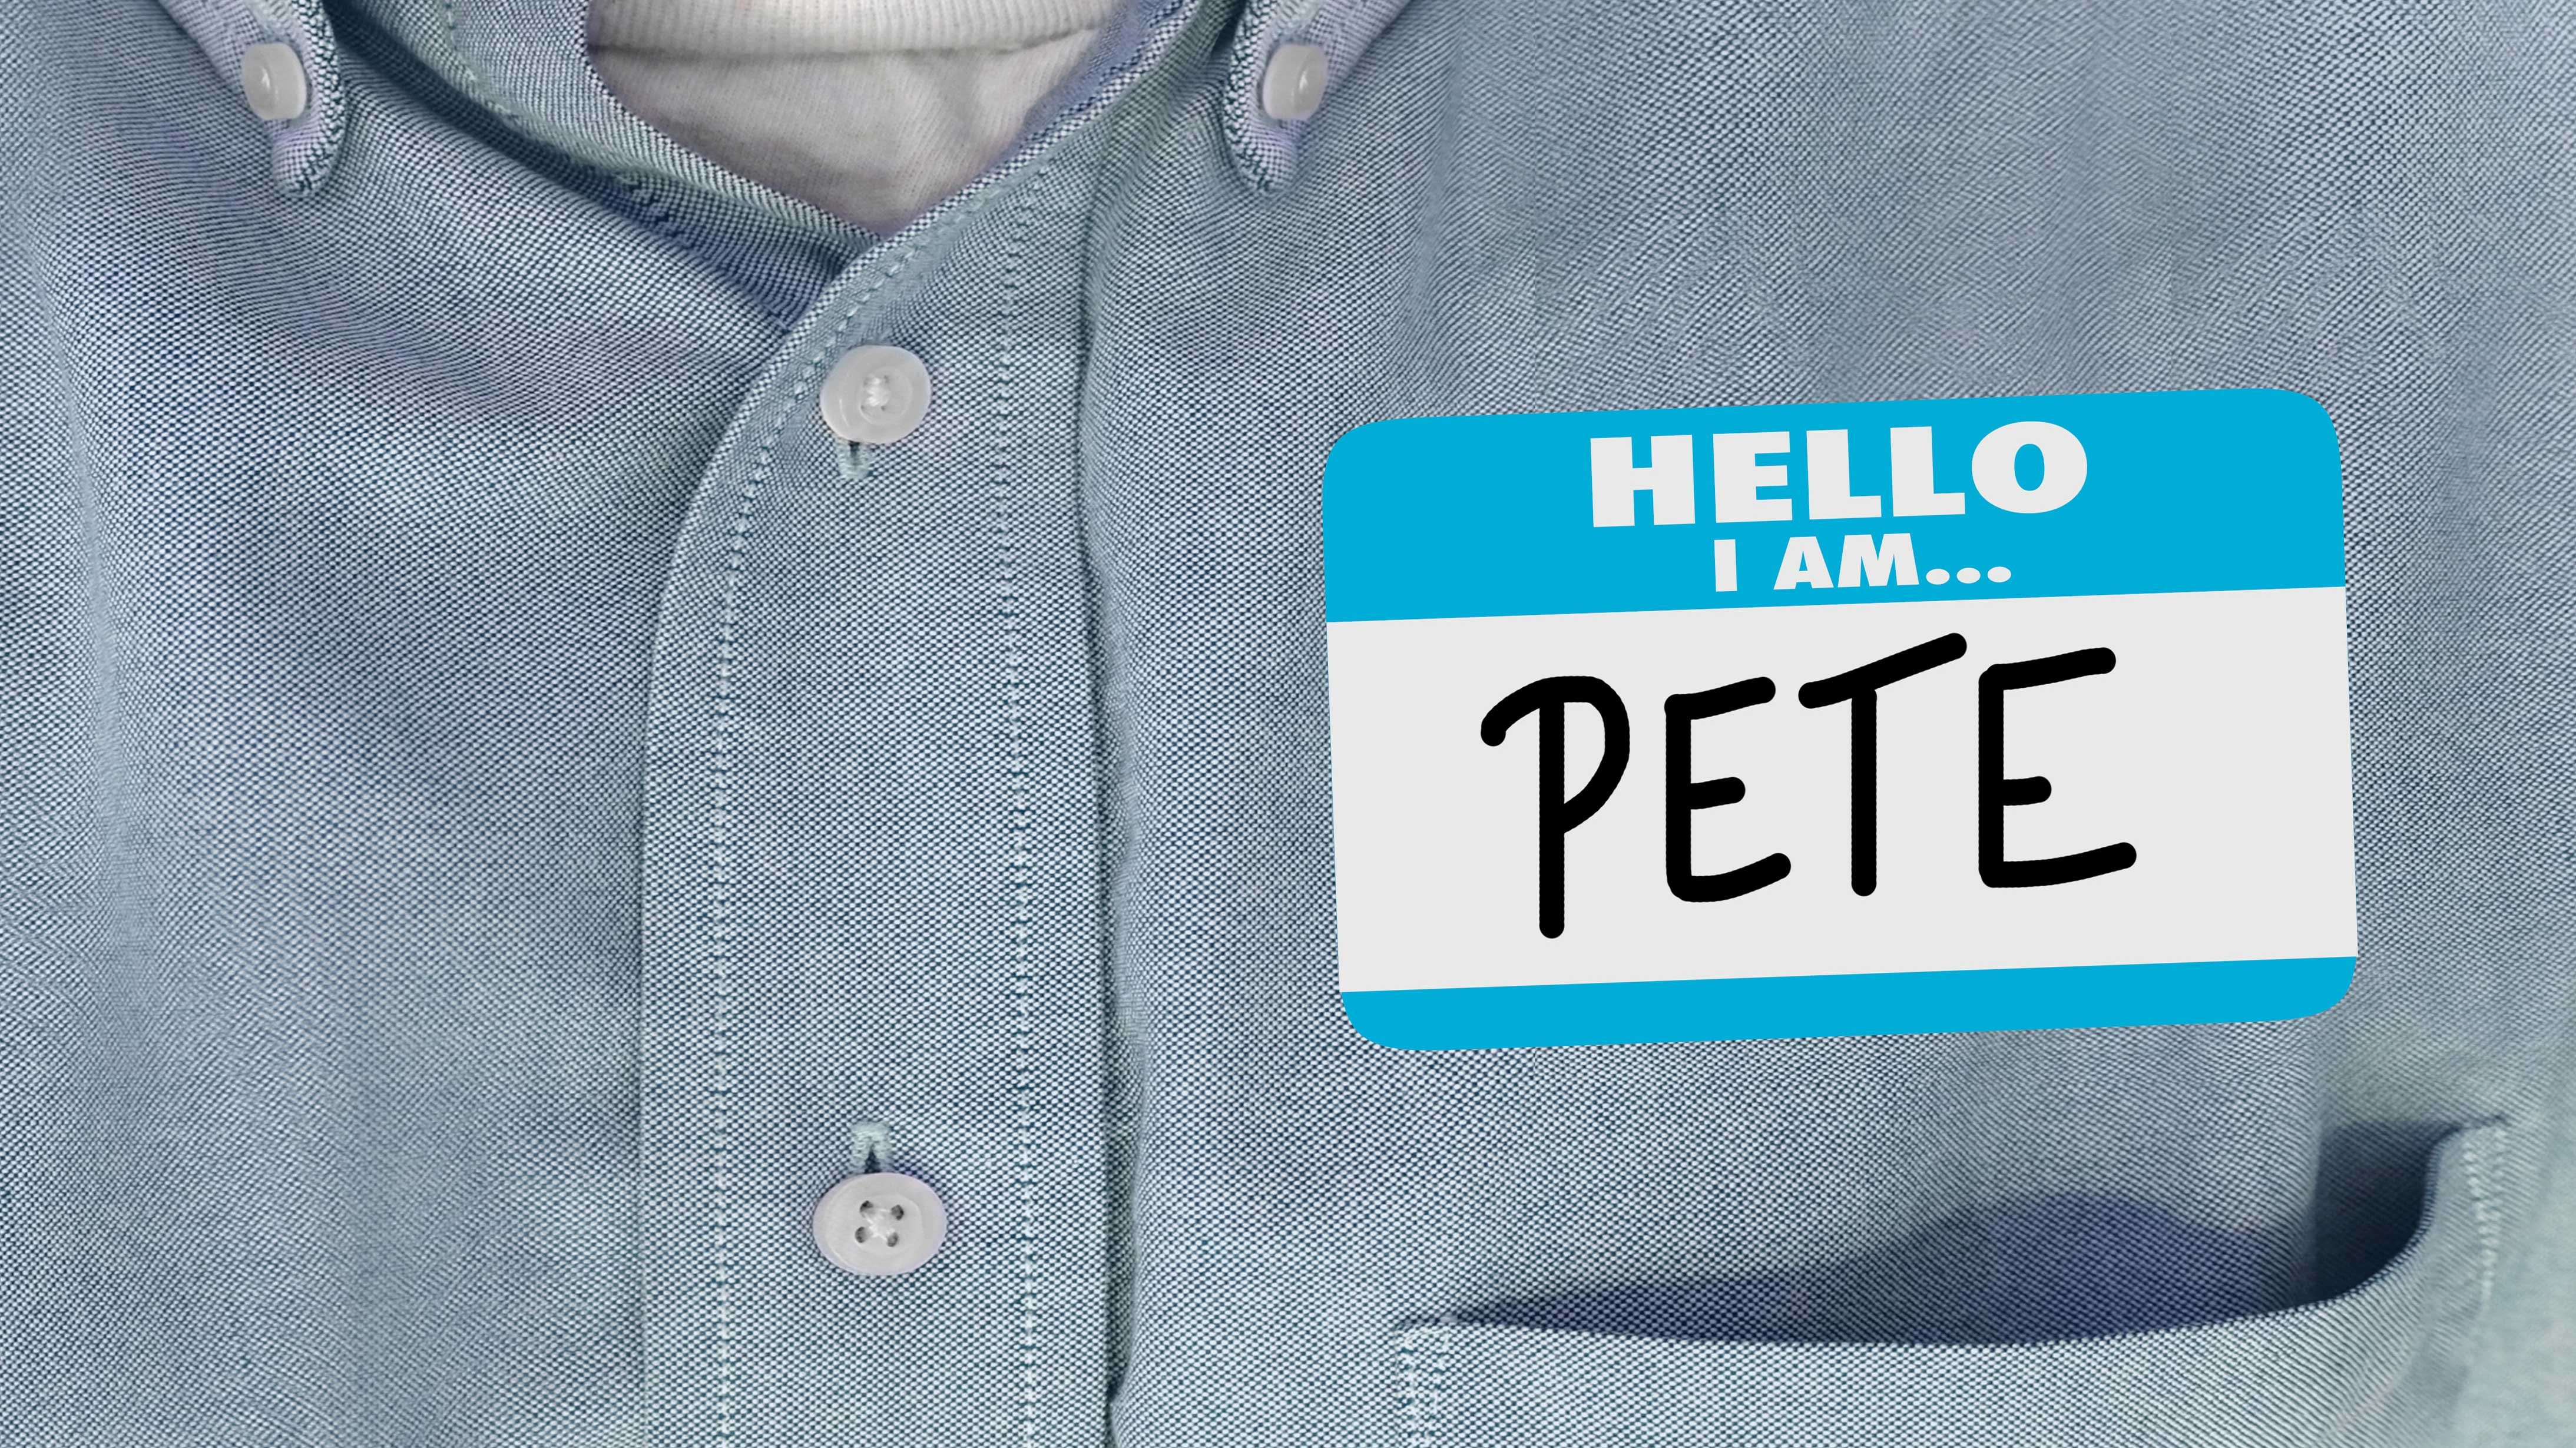 For Pete's Sake! Who Is Pete Anyway?